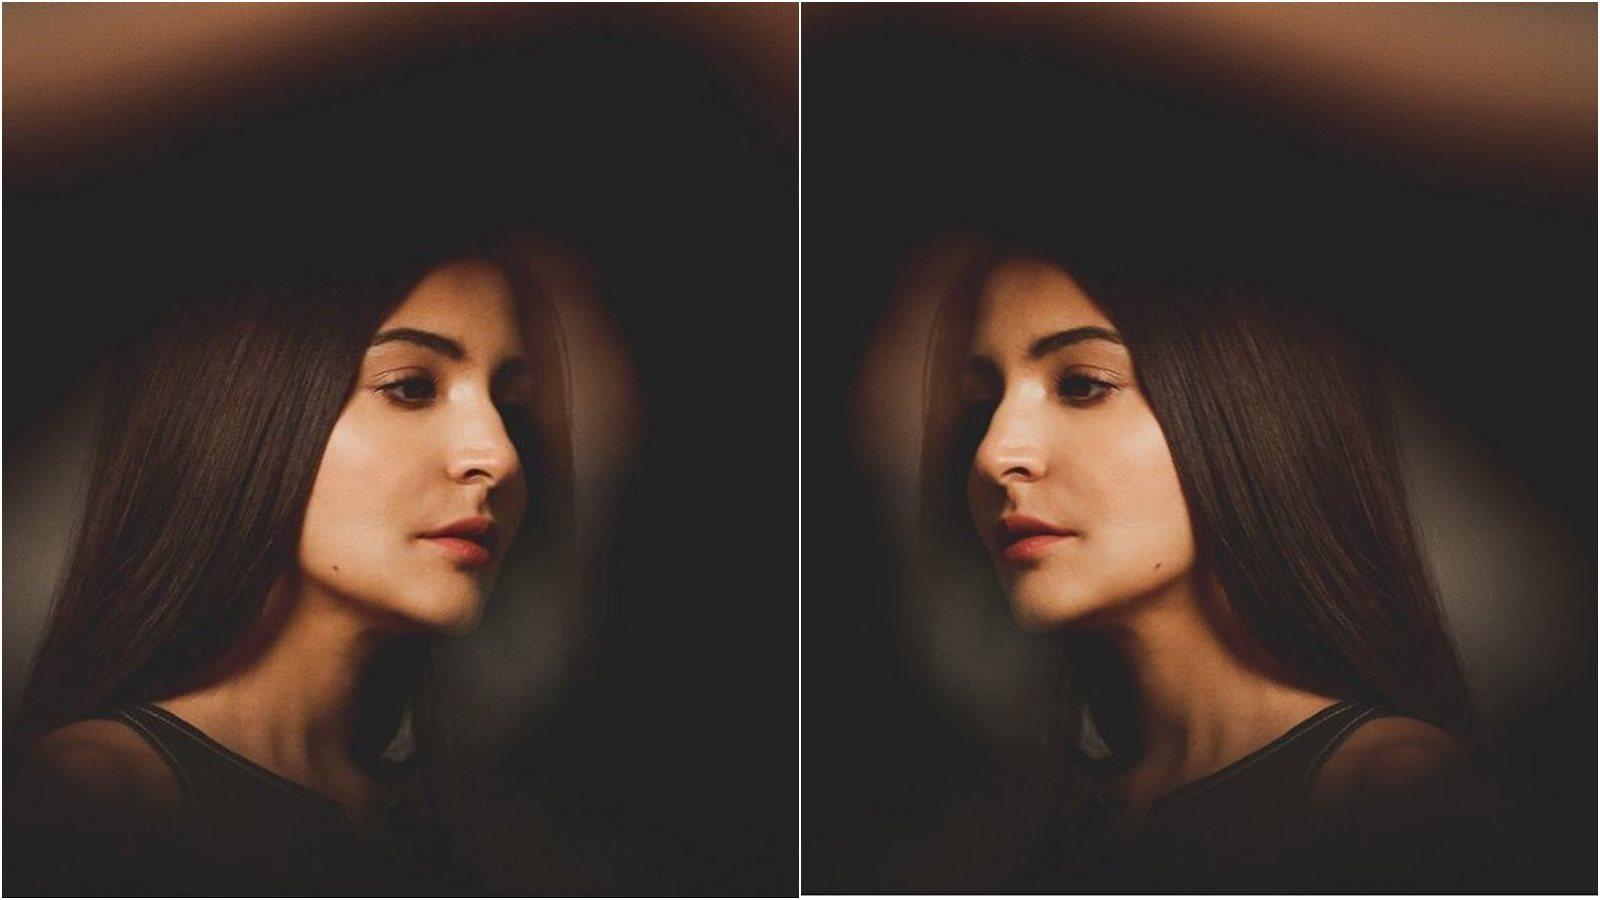 anushka-sharma-looks-surreal-in-new-headshot-photo-her-extraordinary-facial-features-grab-all-the-limelight